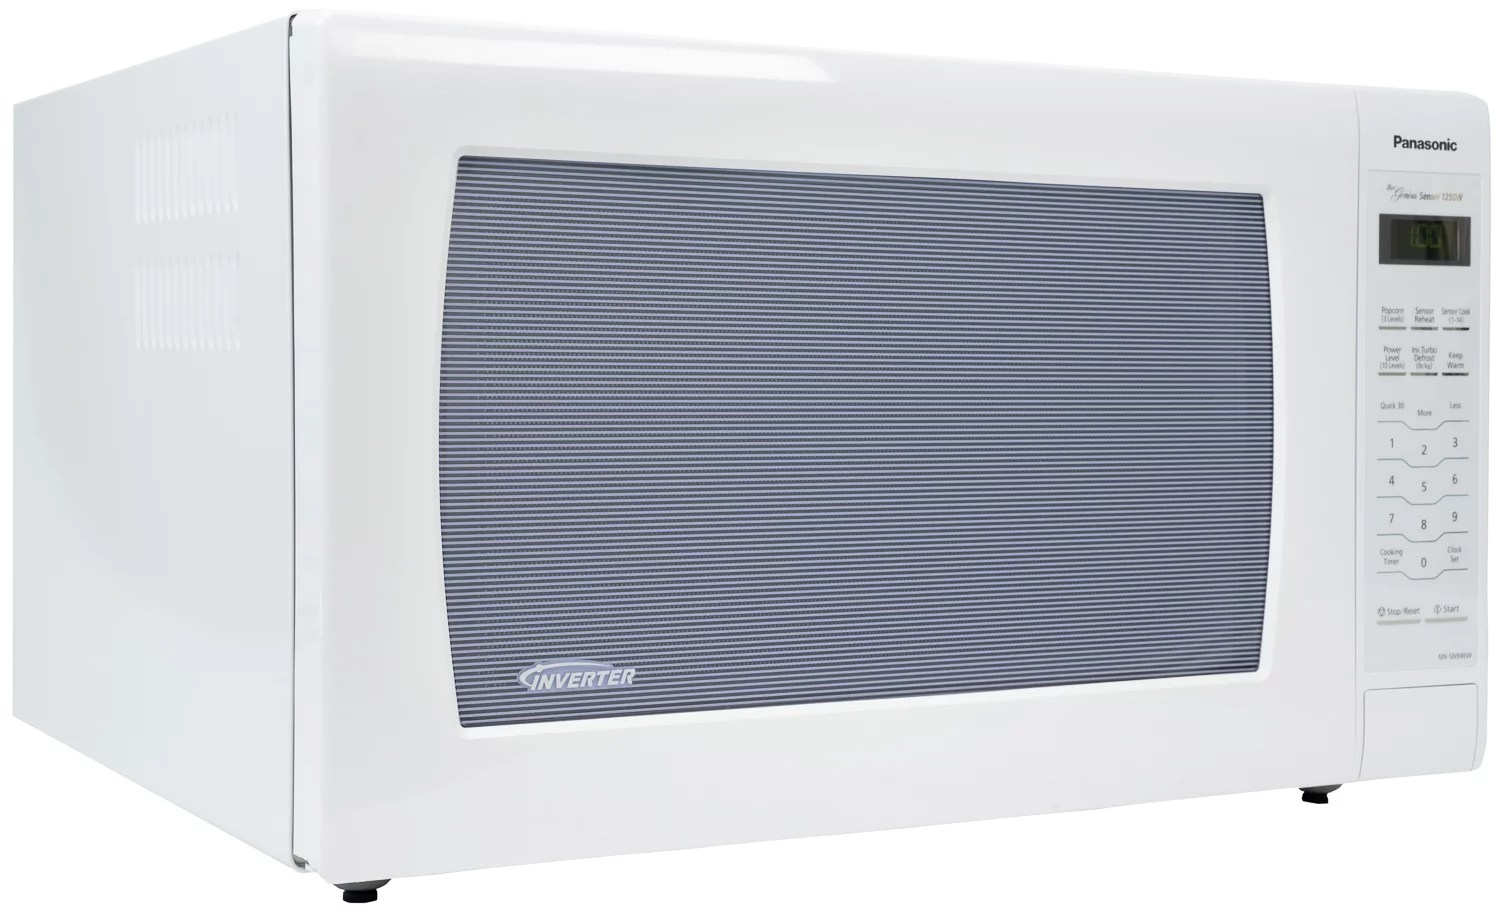 panasonic 2 2 cu ft countertop microwave oven 1250w inverter power genius cooking sensor and turbo defrost white exterior nn sn946w